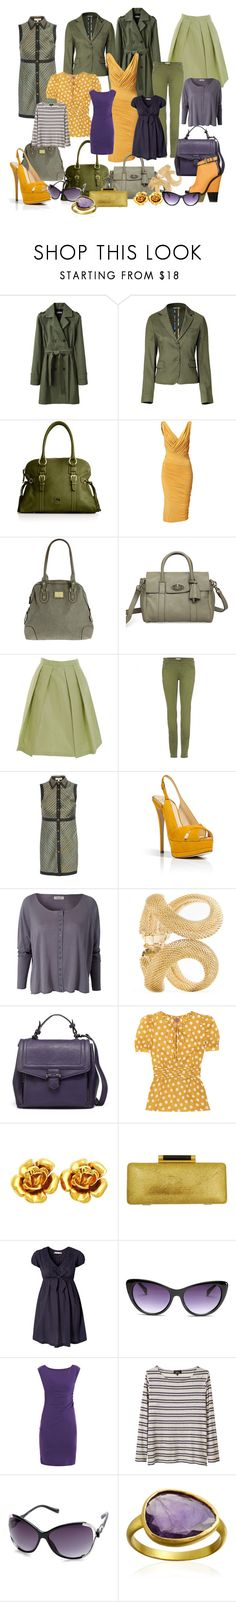 """""""Purples/Mustards/Olives"""" by icebubbletea ❤ liked on Polyvore featuring Organic by John Patrick, Etro, Dooney & Bourke, Donna Karan, Dorothy Perkins, Mulberry, Prada, Givenchy, Opening Ceremony and Giuseppe Zanotti"""